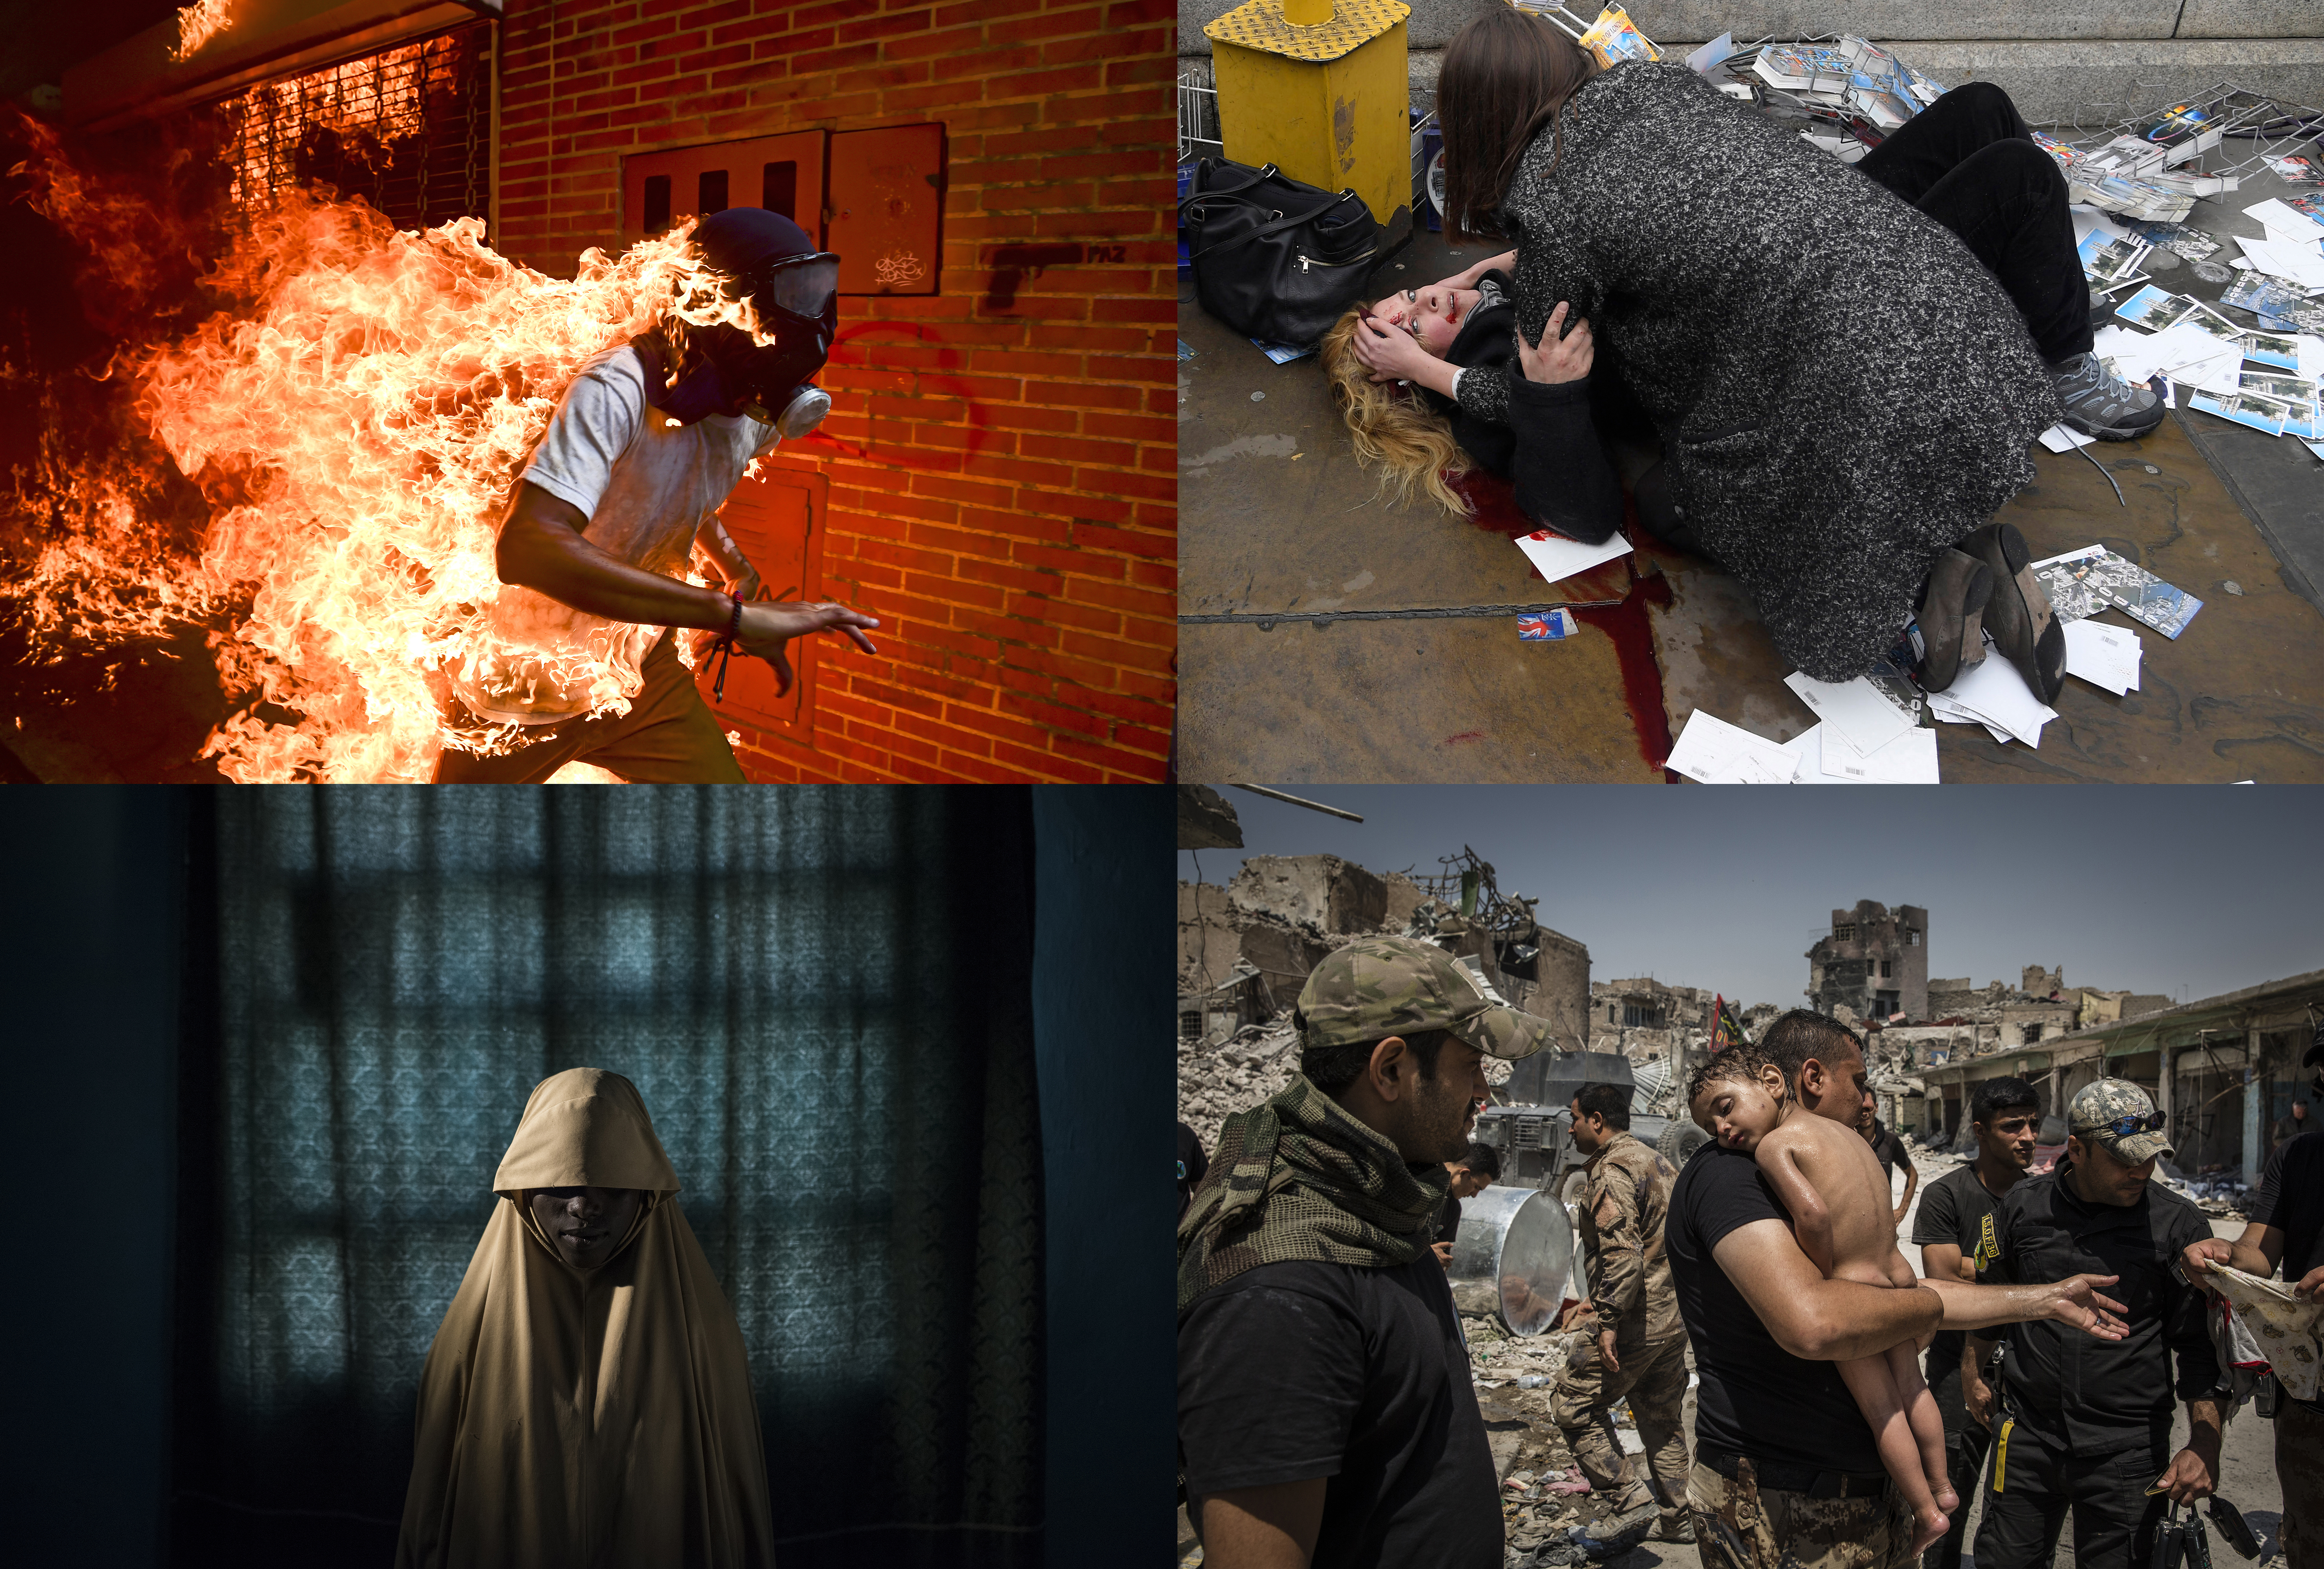 Credits:<br /> Top left to right: Ronaldo Schemidt, Agence France-Presse; Toby Melville, Reuters.